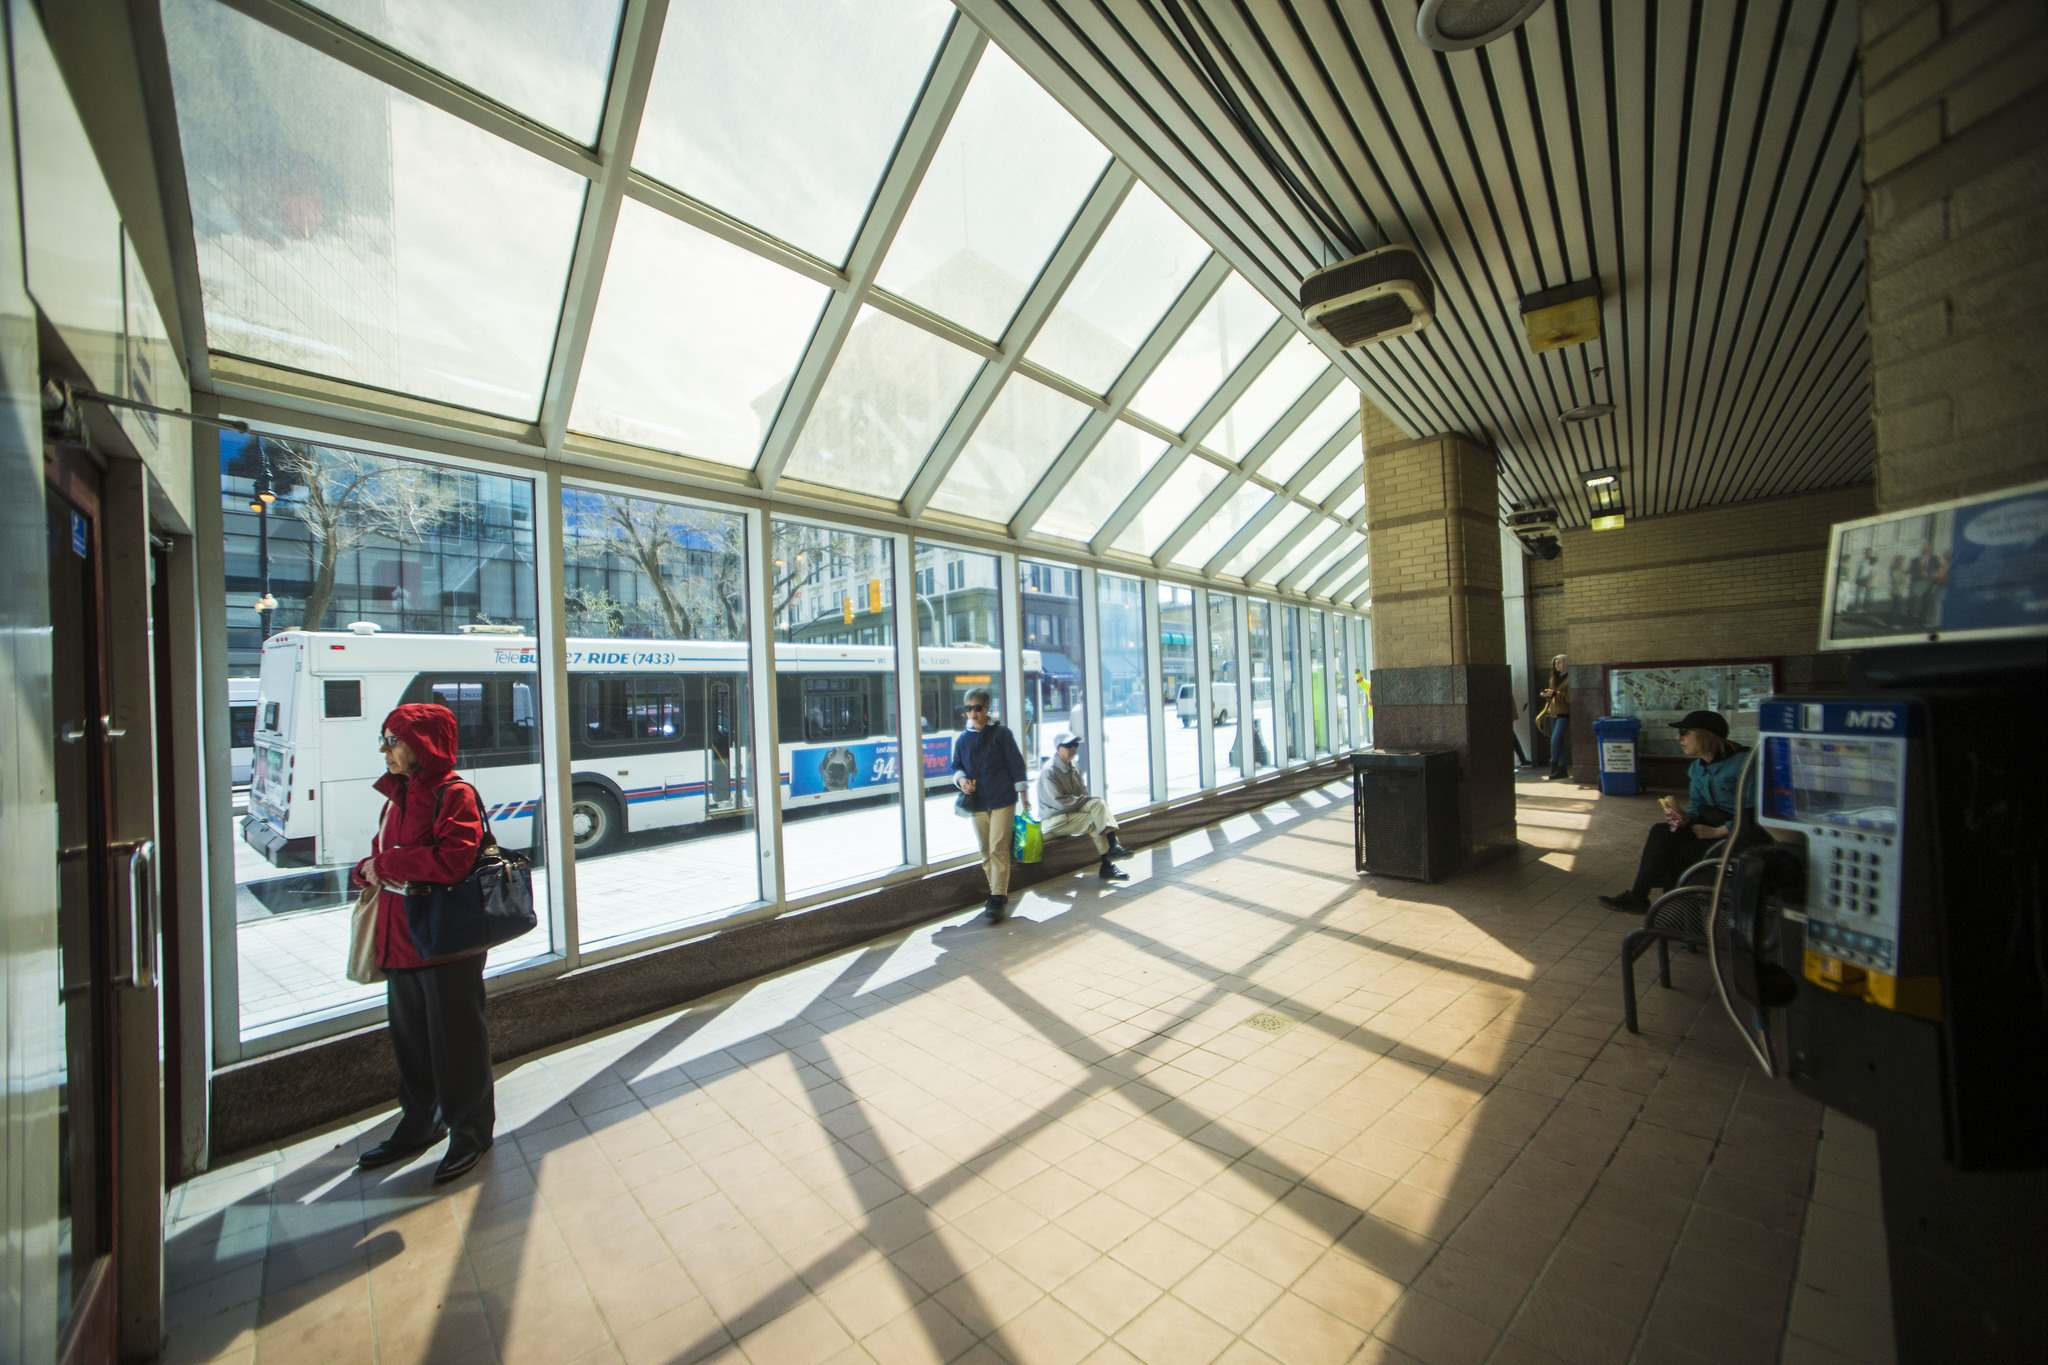 MIKAELA MACKENZIE / WINNIPEG FREE PRESS</p><p>The bus stop shelter at Portage Place on Portage Ave.</p>